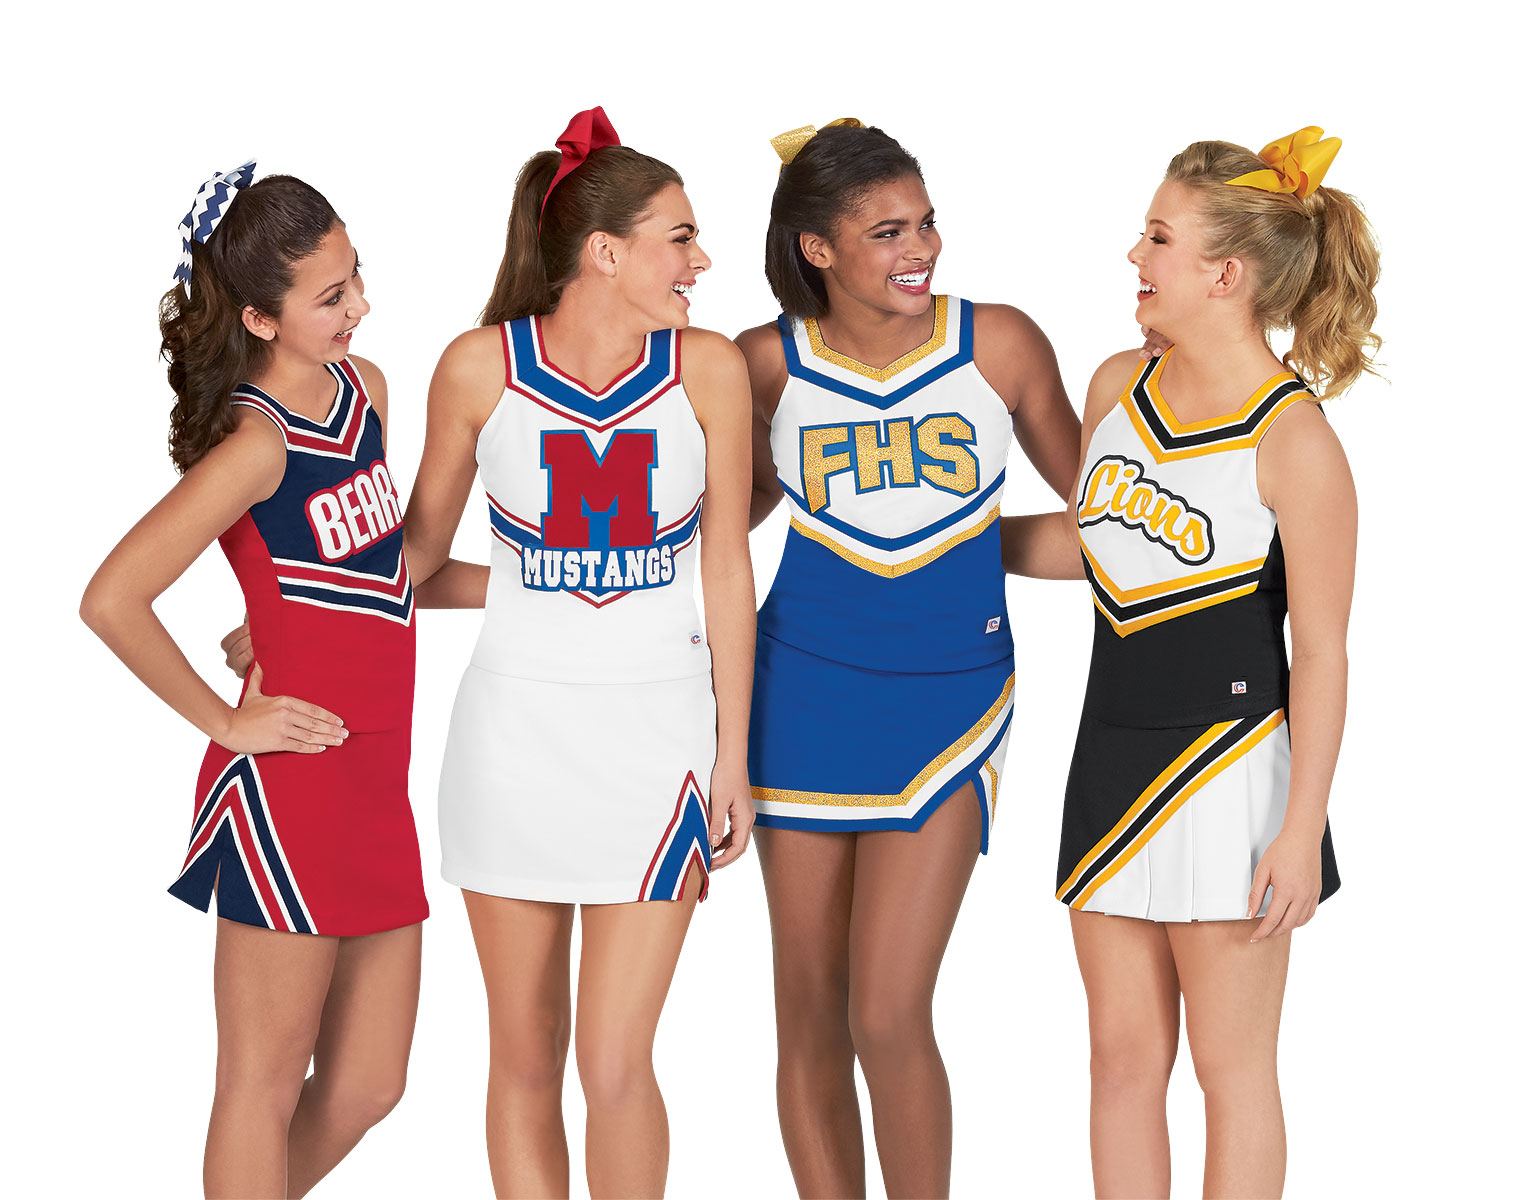 0e5305bcc84 Ordering Custom Made-to-Order Cheer and Dance Uniforms from Cheerleading.com  and CC Dancewear is Easy!!